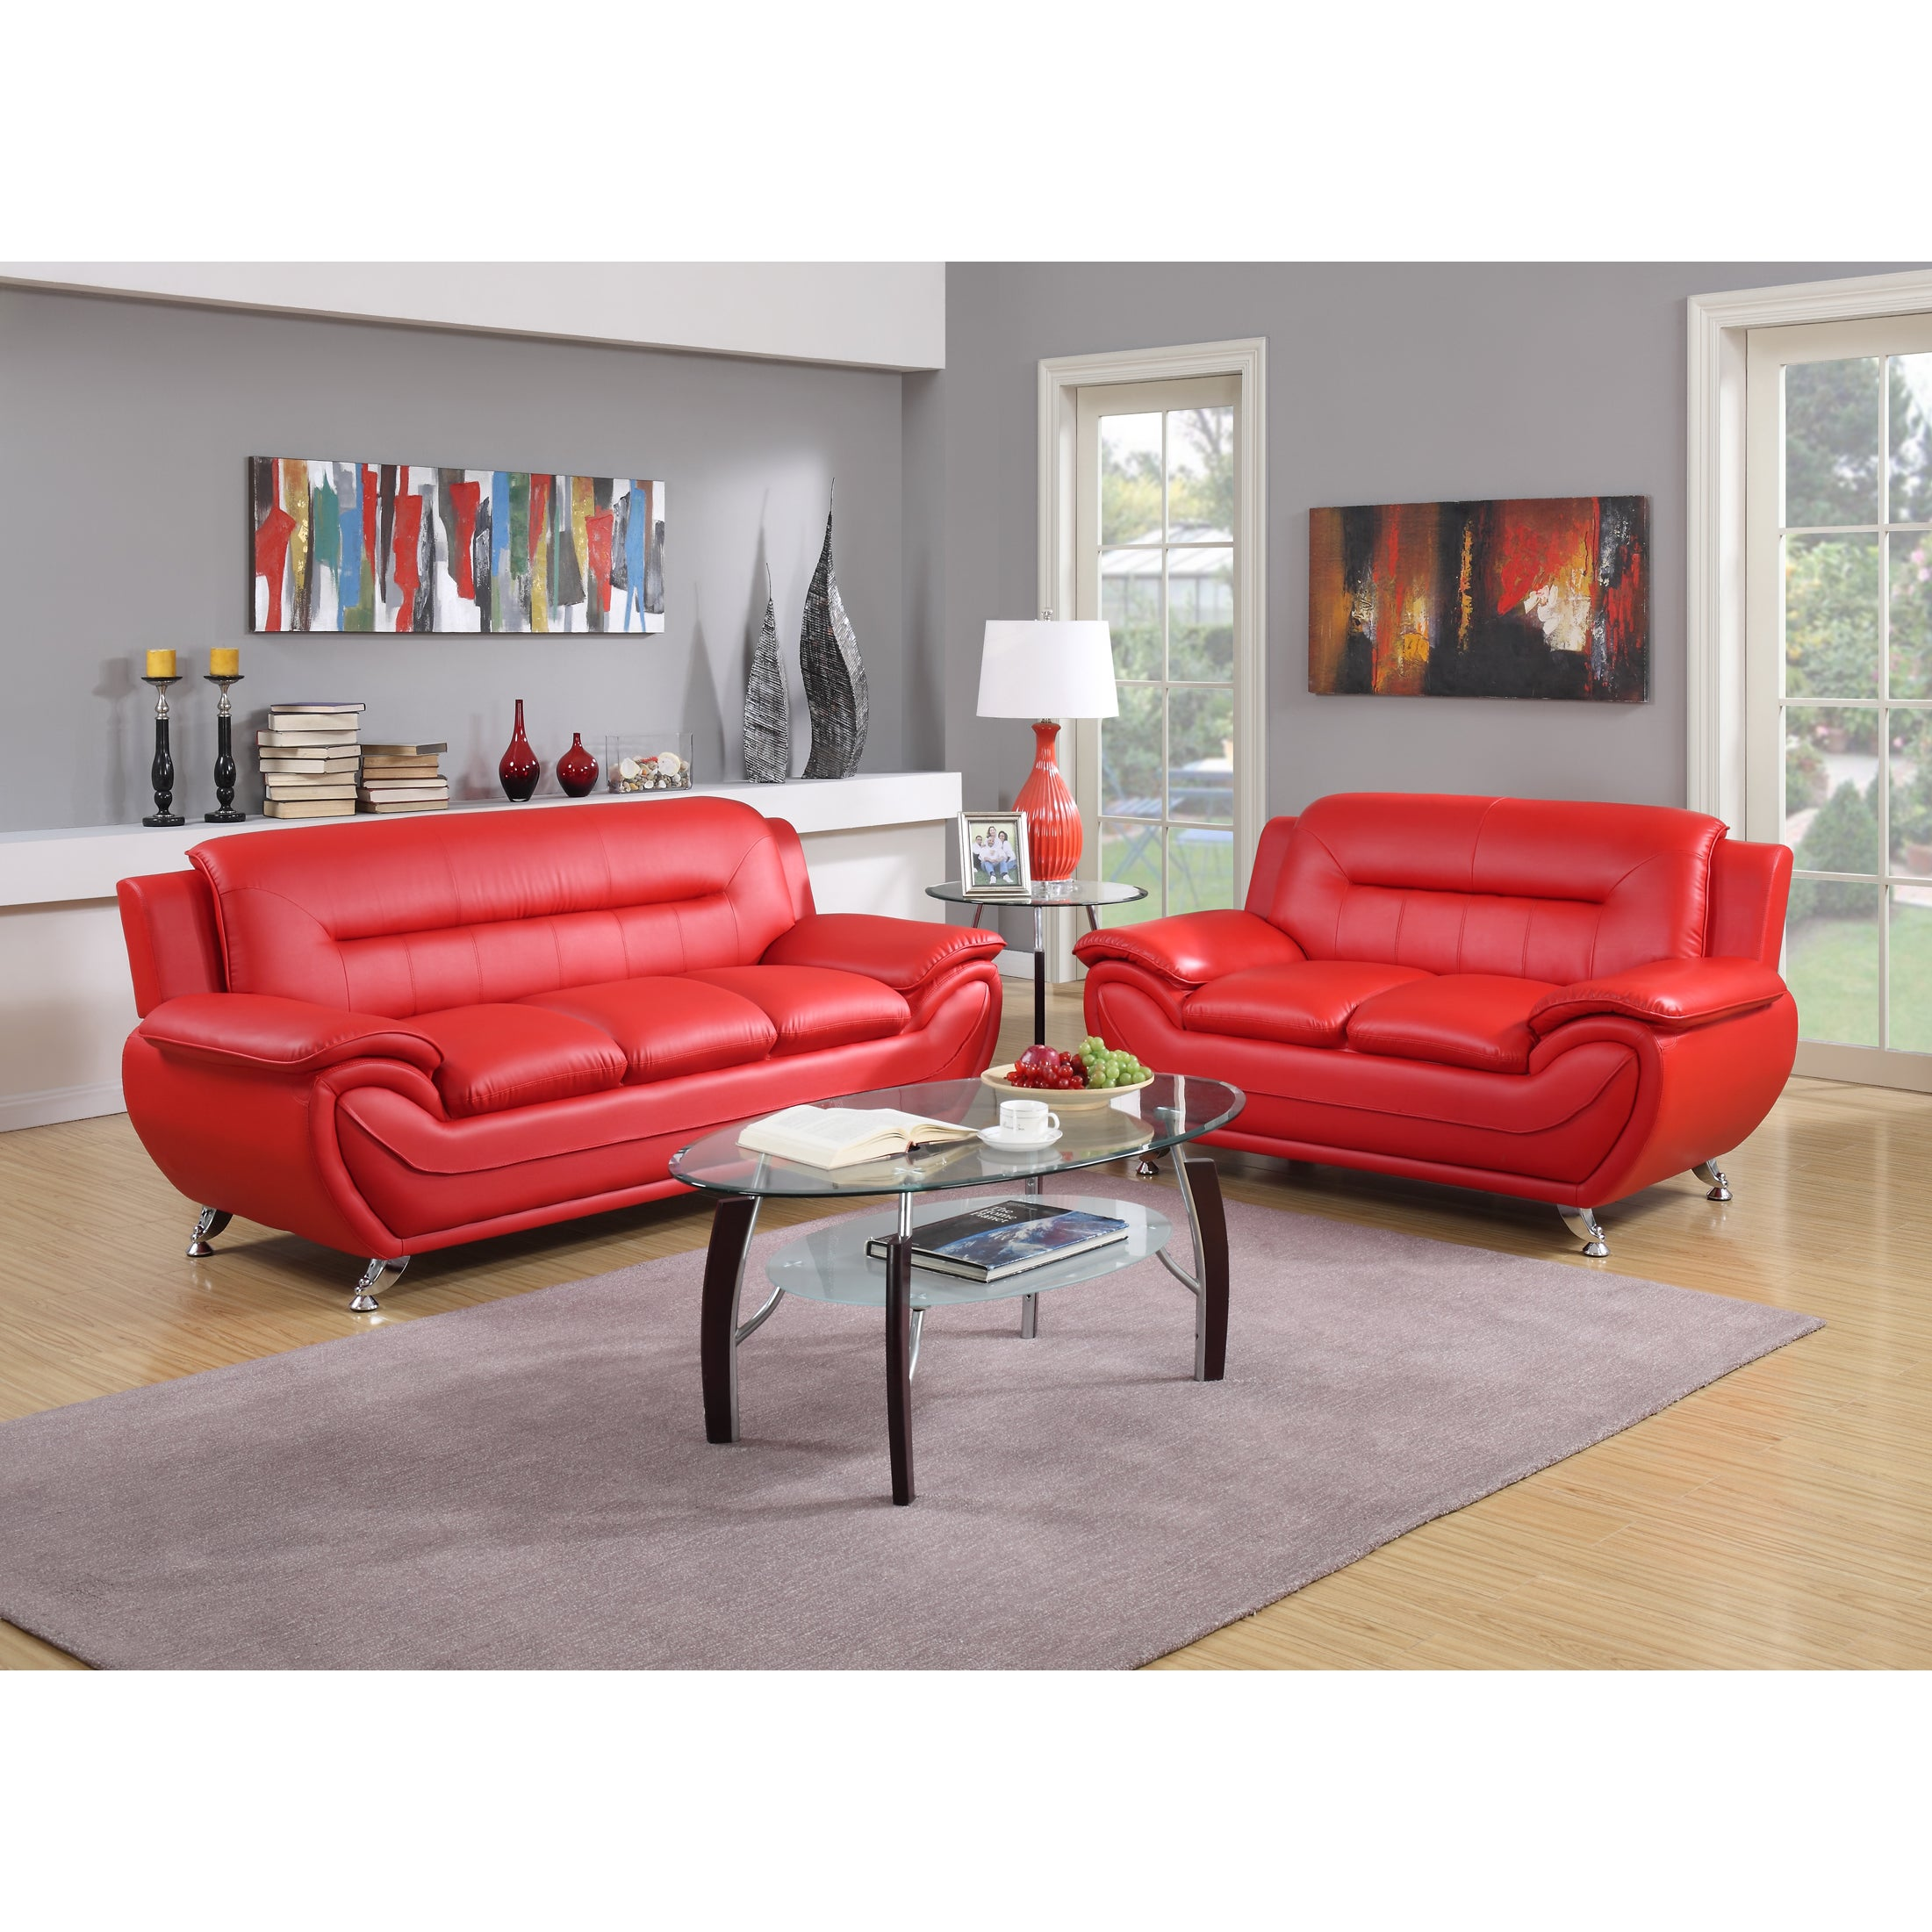 Shop Contemporary 2-piece Bonded Leather Sofa and Loveseat Set ...